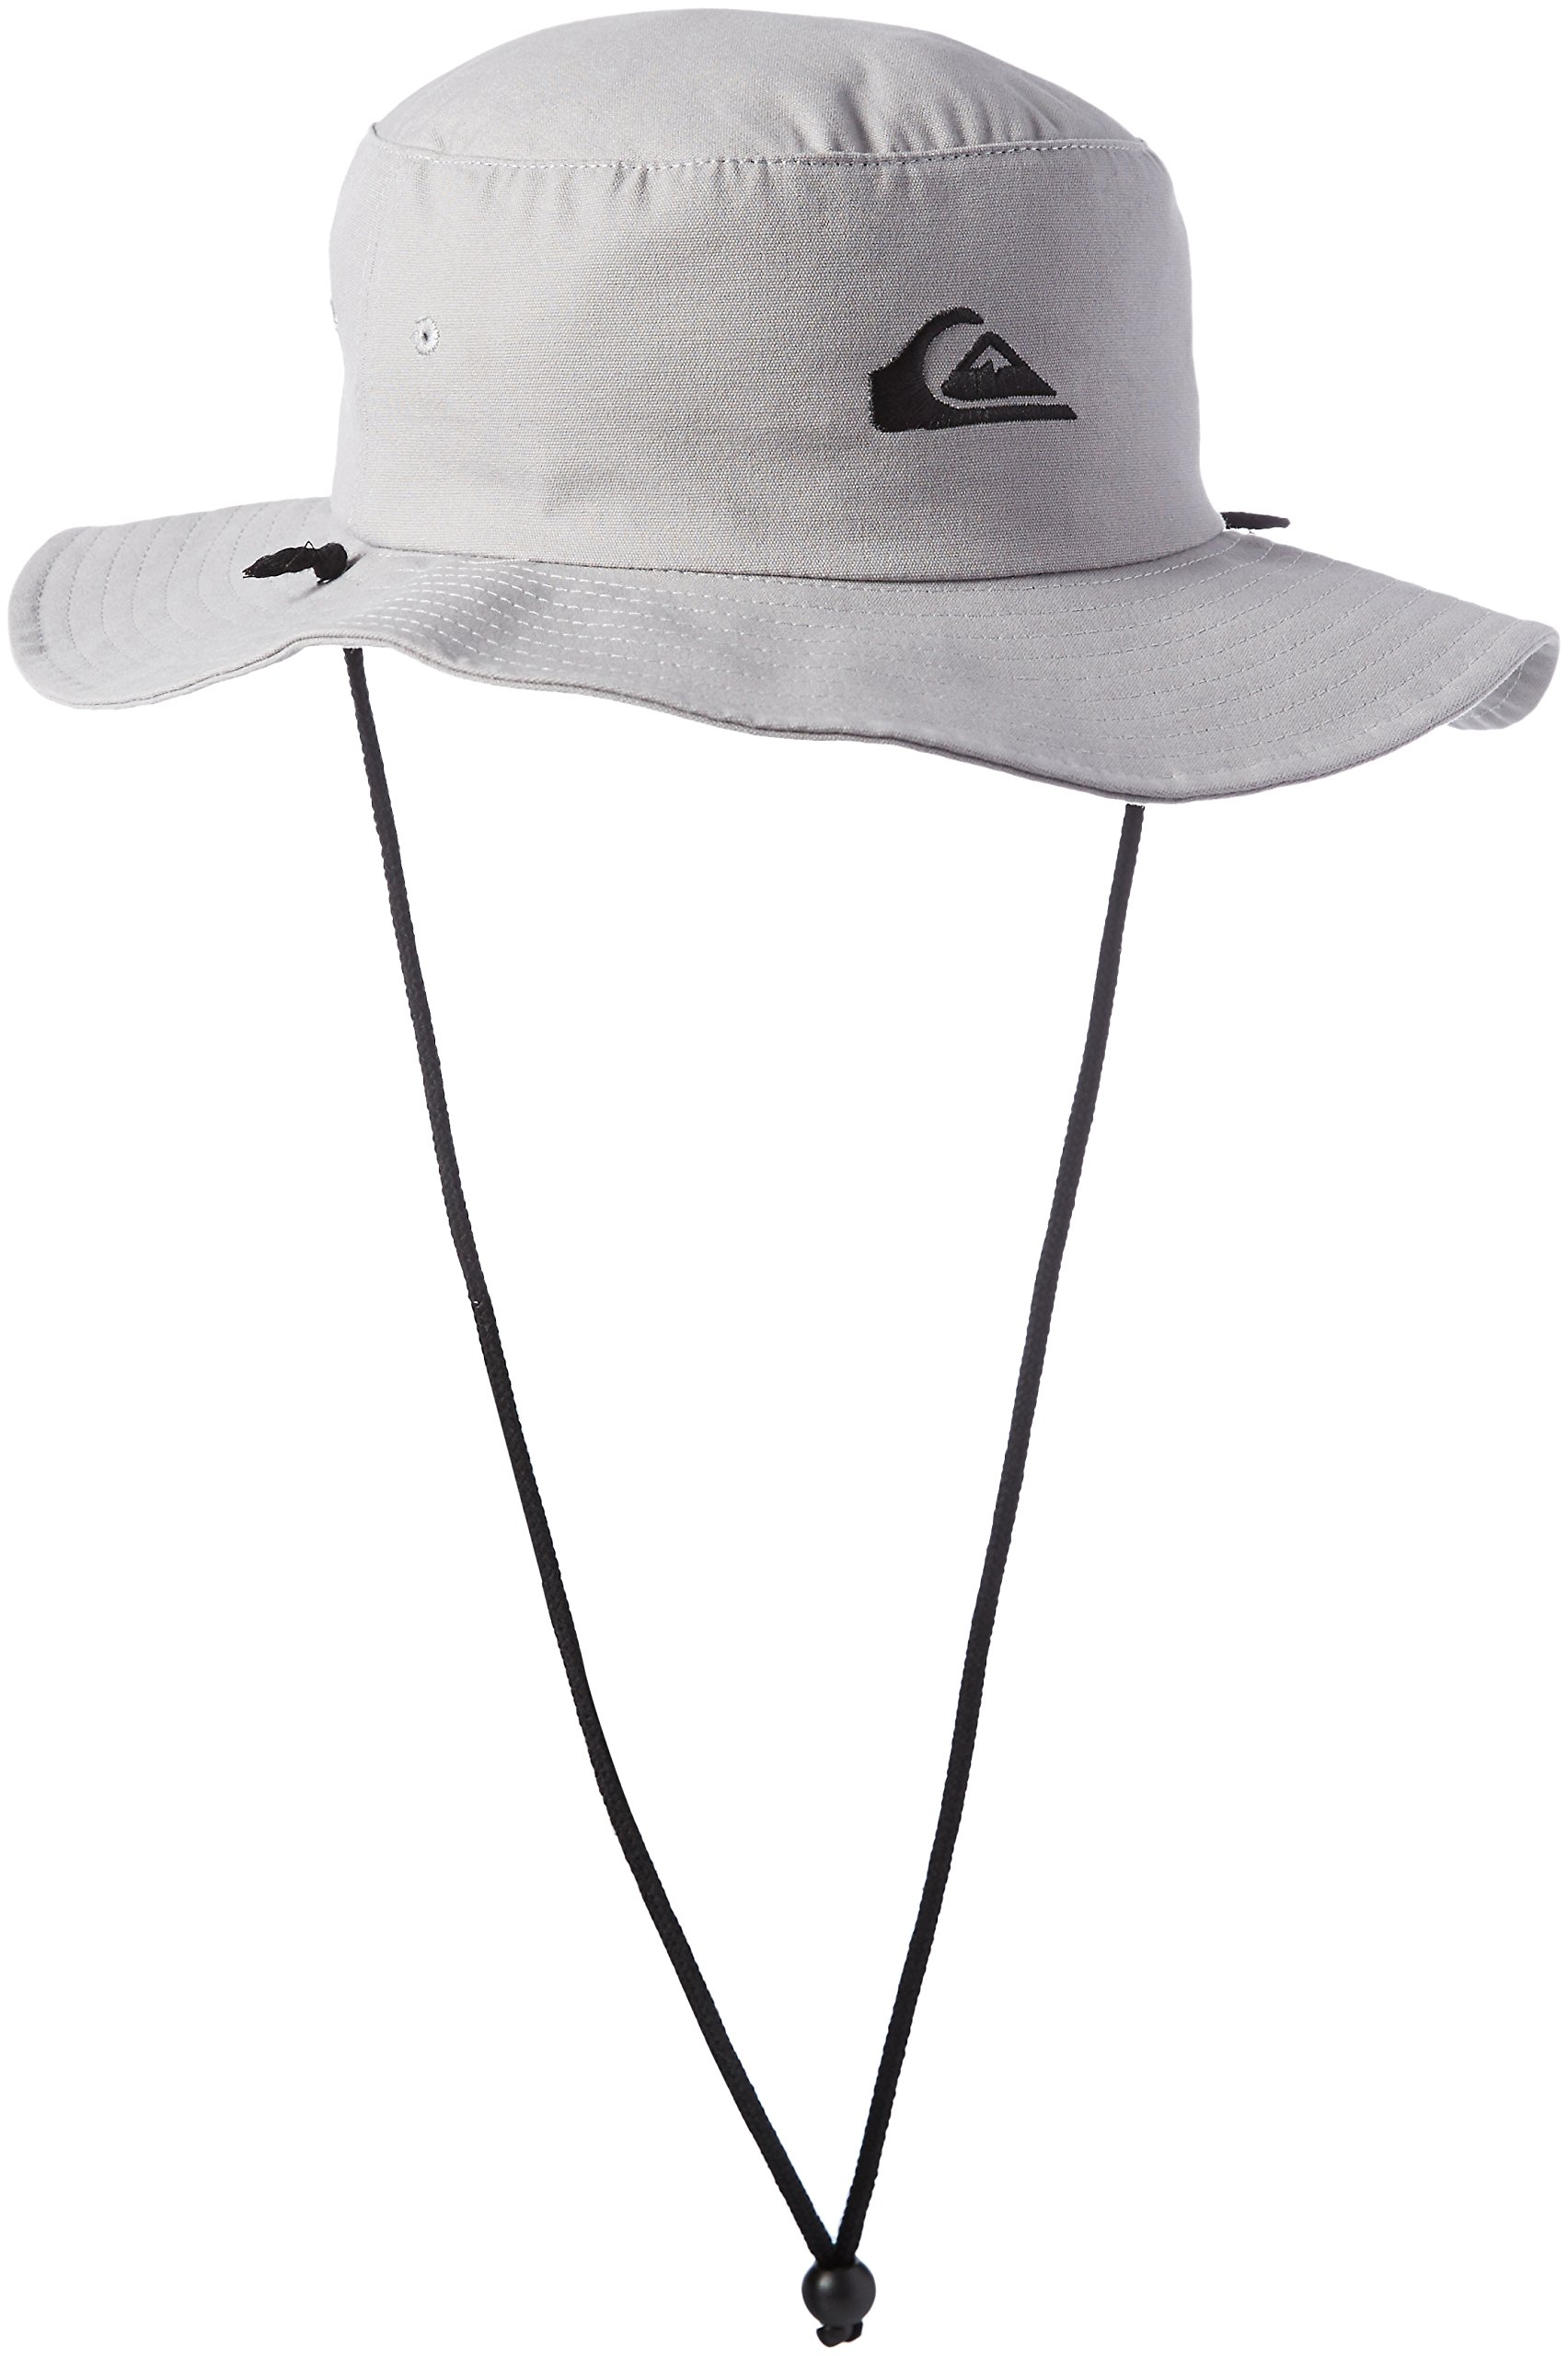 Quiksilver Men's Bushmaster Floppy Sun Beach Hat, Steeple Grey, Large/X-Large